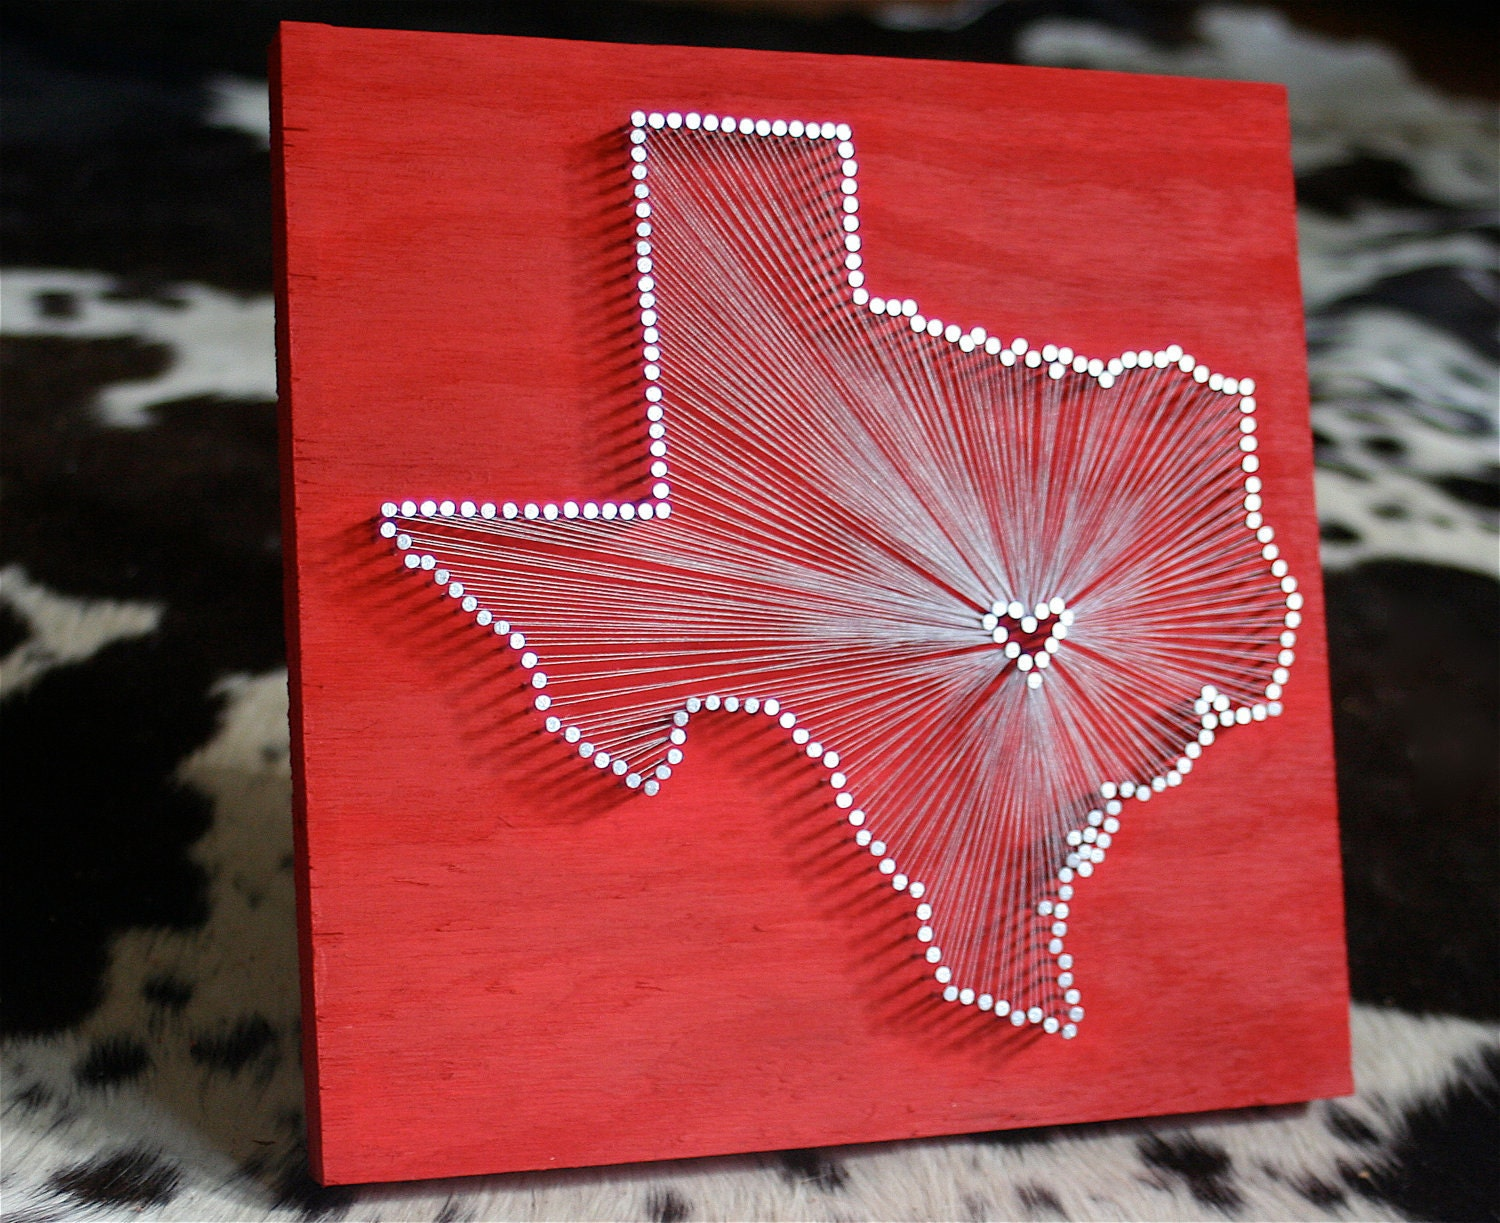 State String Art Pictures to Pin on Pinterest - PinsDaddy